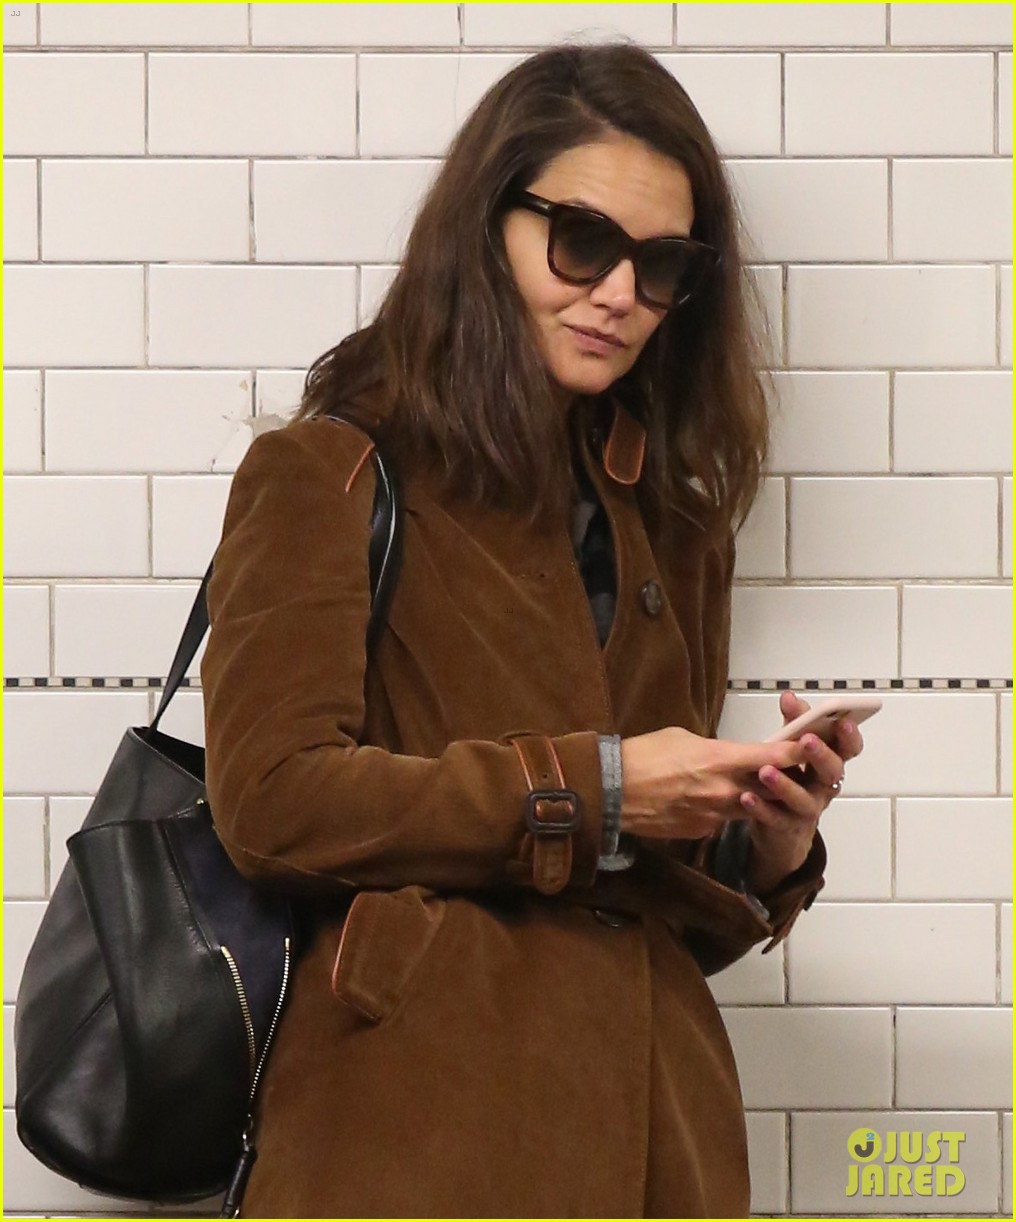 katie holmes rides the subway just like the rest of us 043972987